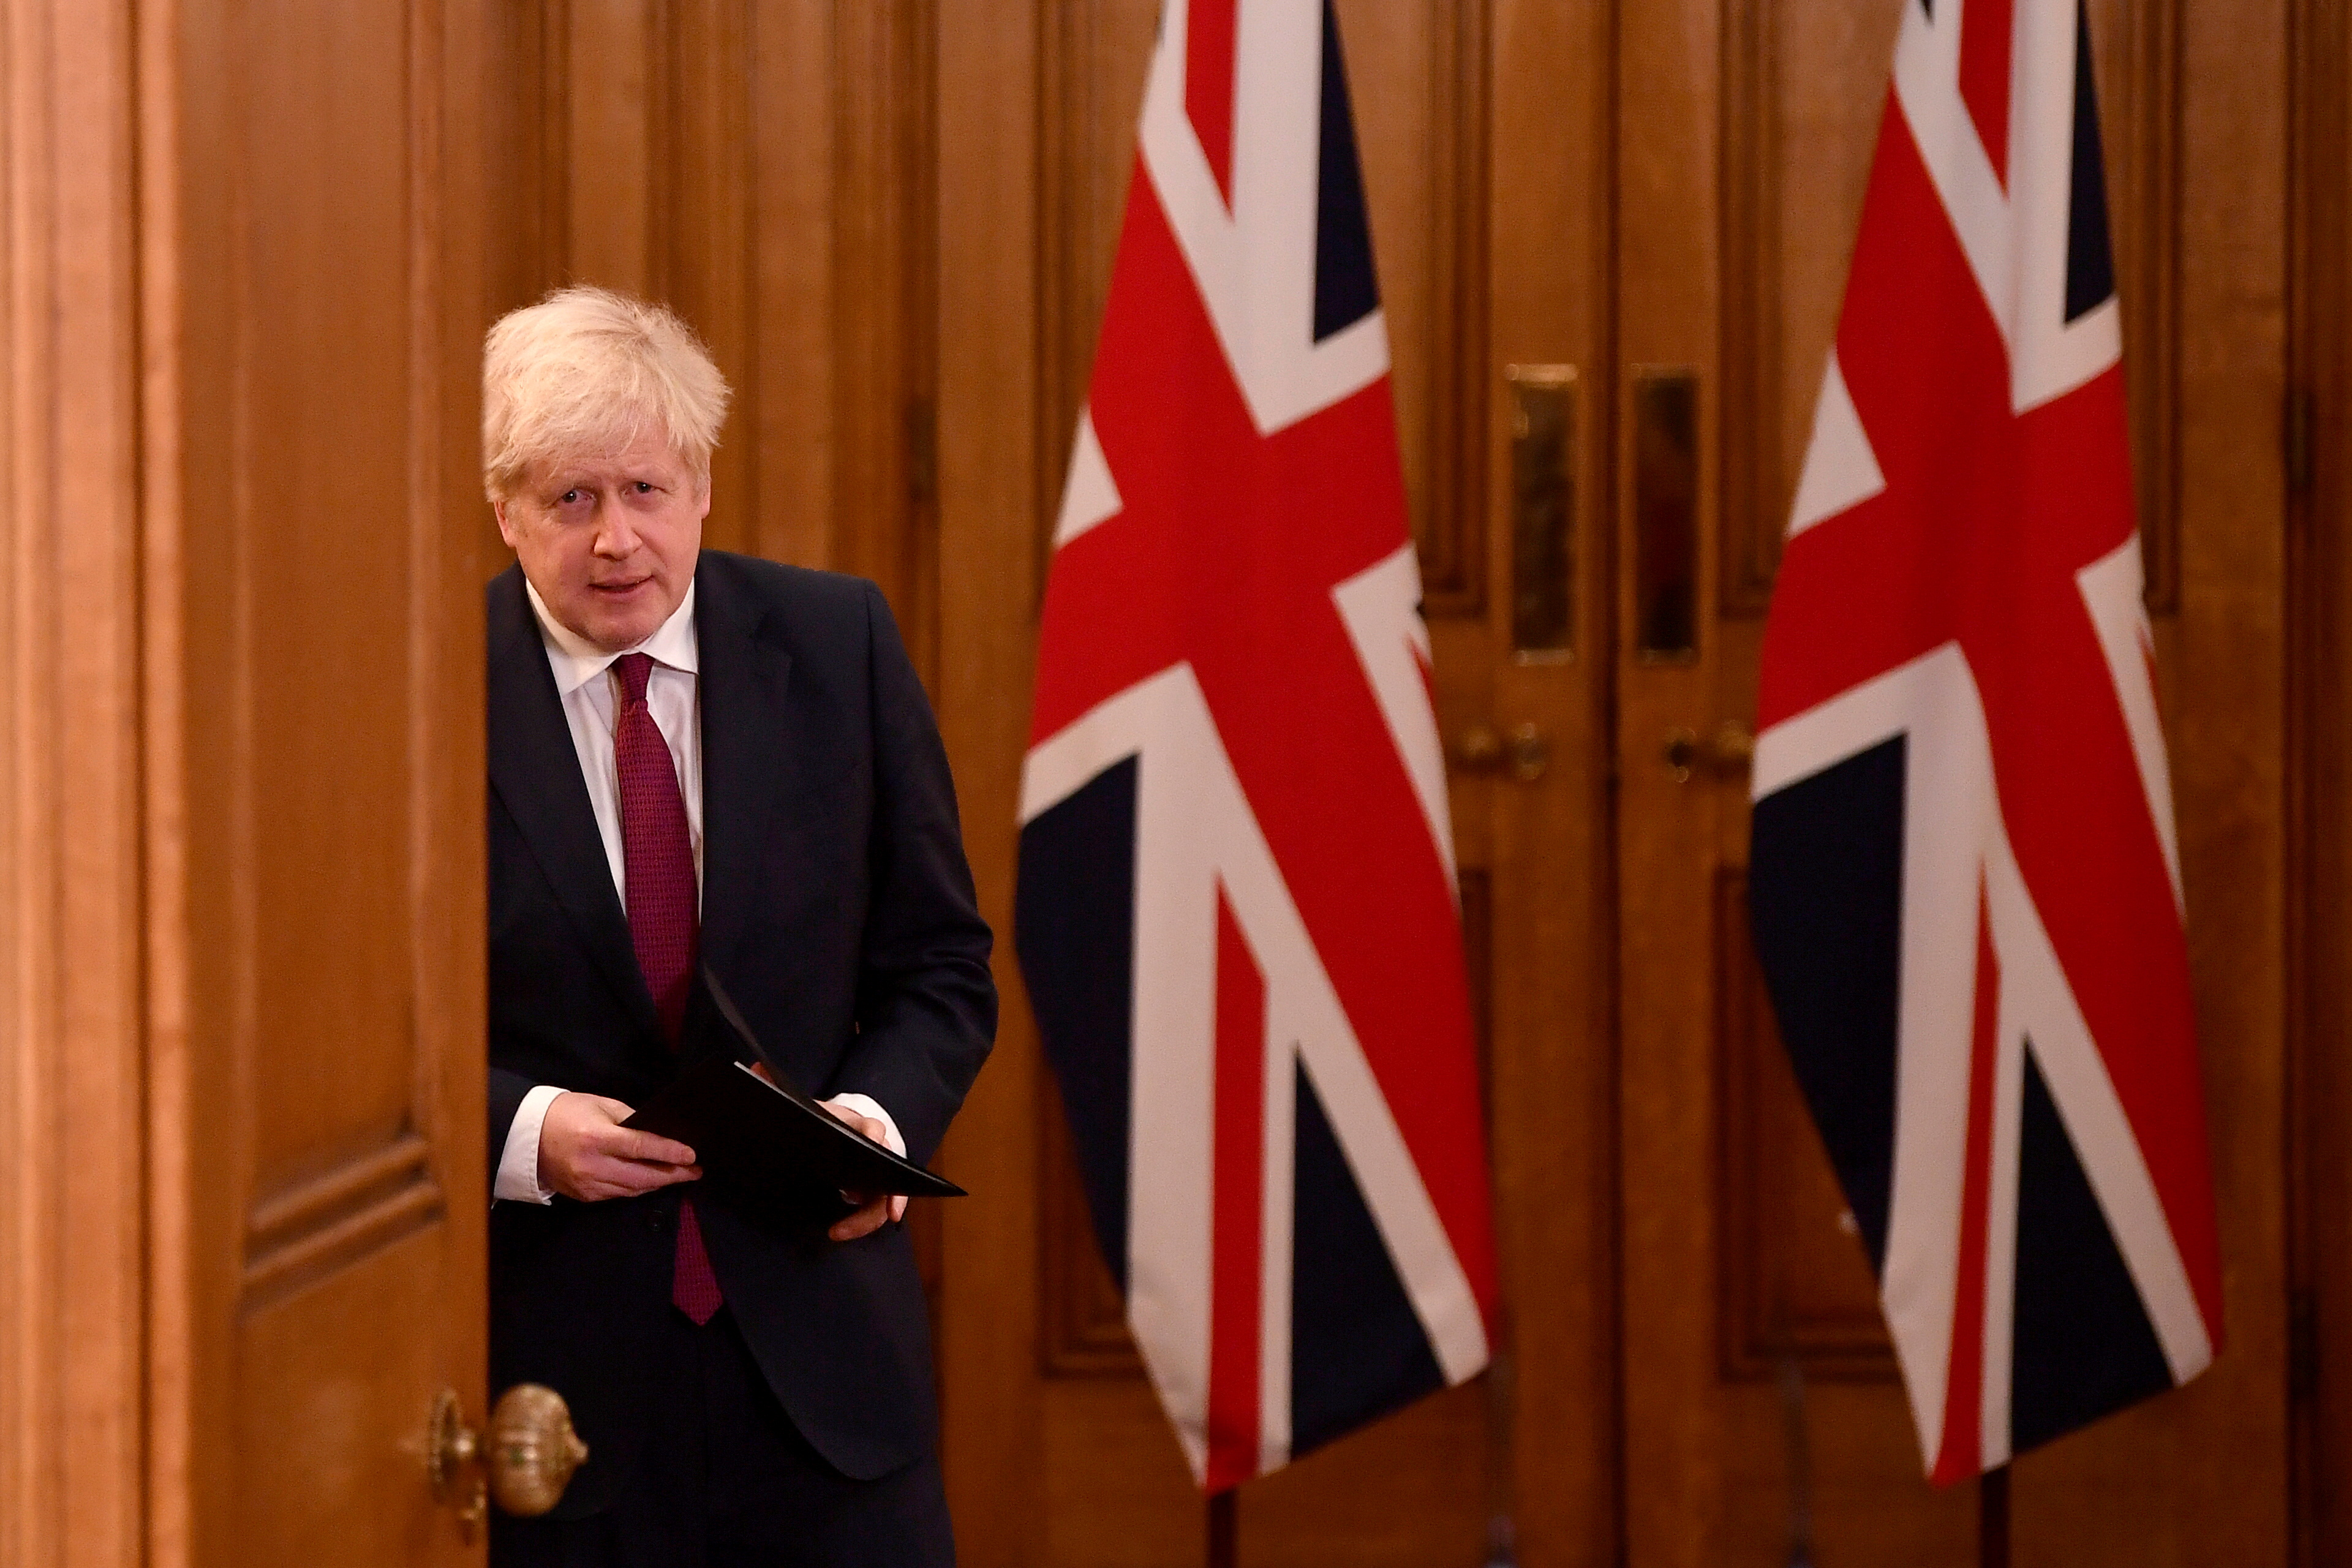 Britain's Prime Minister Boris Johnson arrives to attend a news conference in response to the ongoing situation with the coronavirus disease (COVID-19) pandemic, inside 10 Downing Street, London ,Britain, December 19, 2020. REUTERS/Toby Melville/Pool